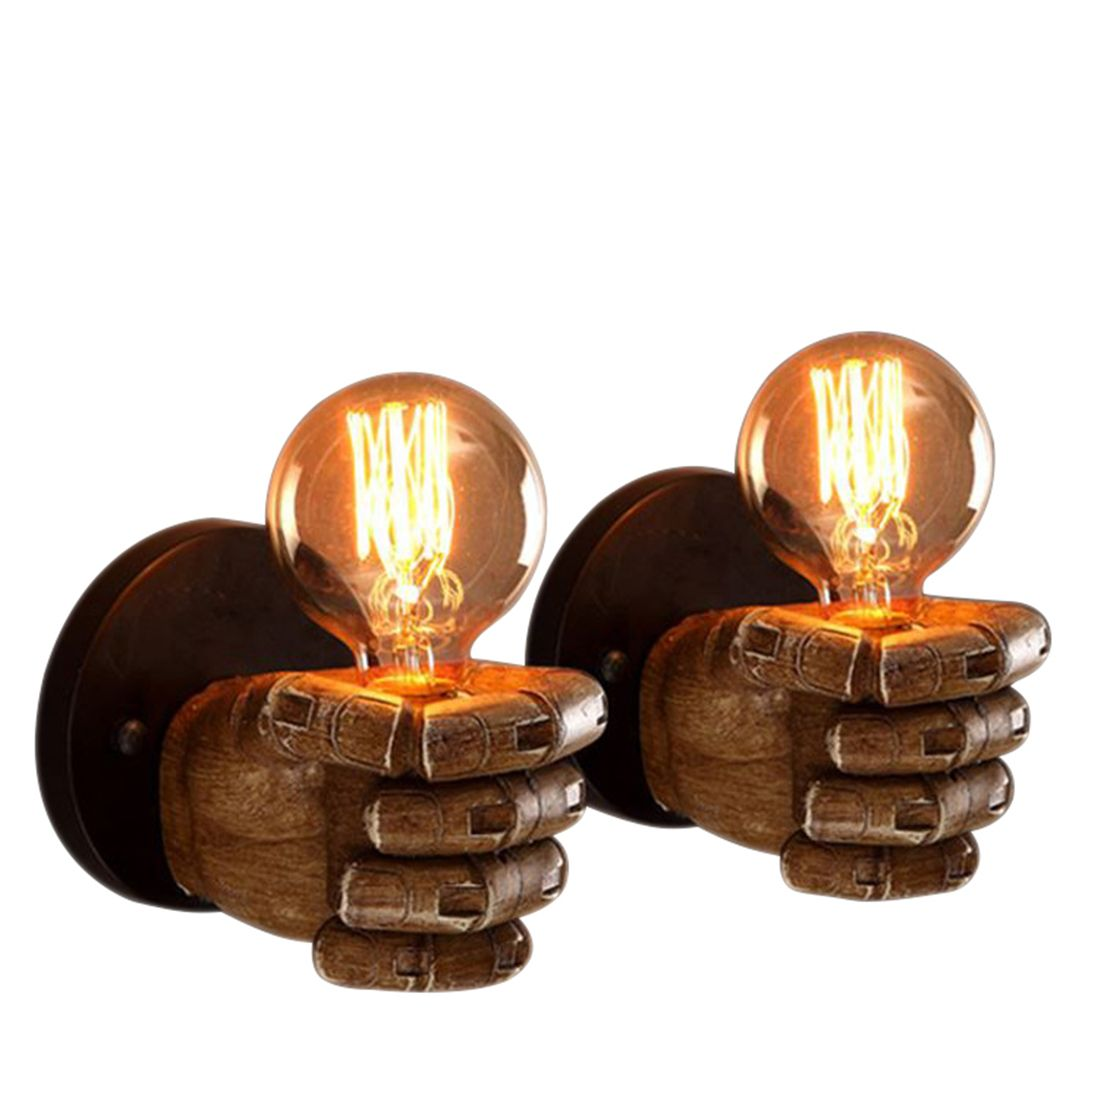 1 pair of left and right hand retro creative fist resin wall lamp Loft industrial style lamp sushi restaurant bar restaurant c недорго, оригинальная цена